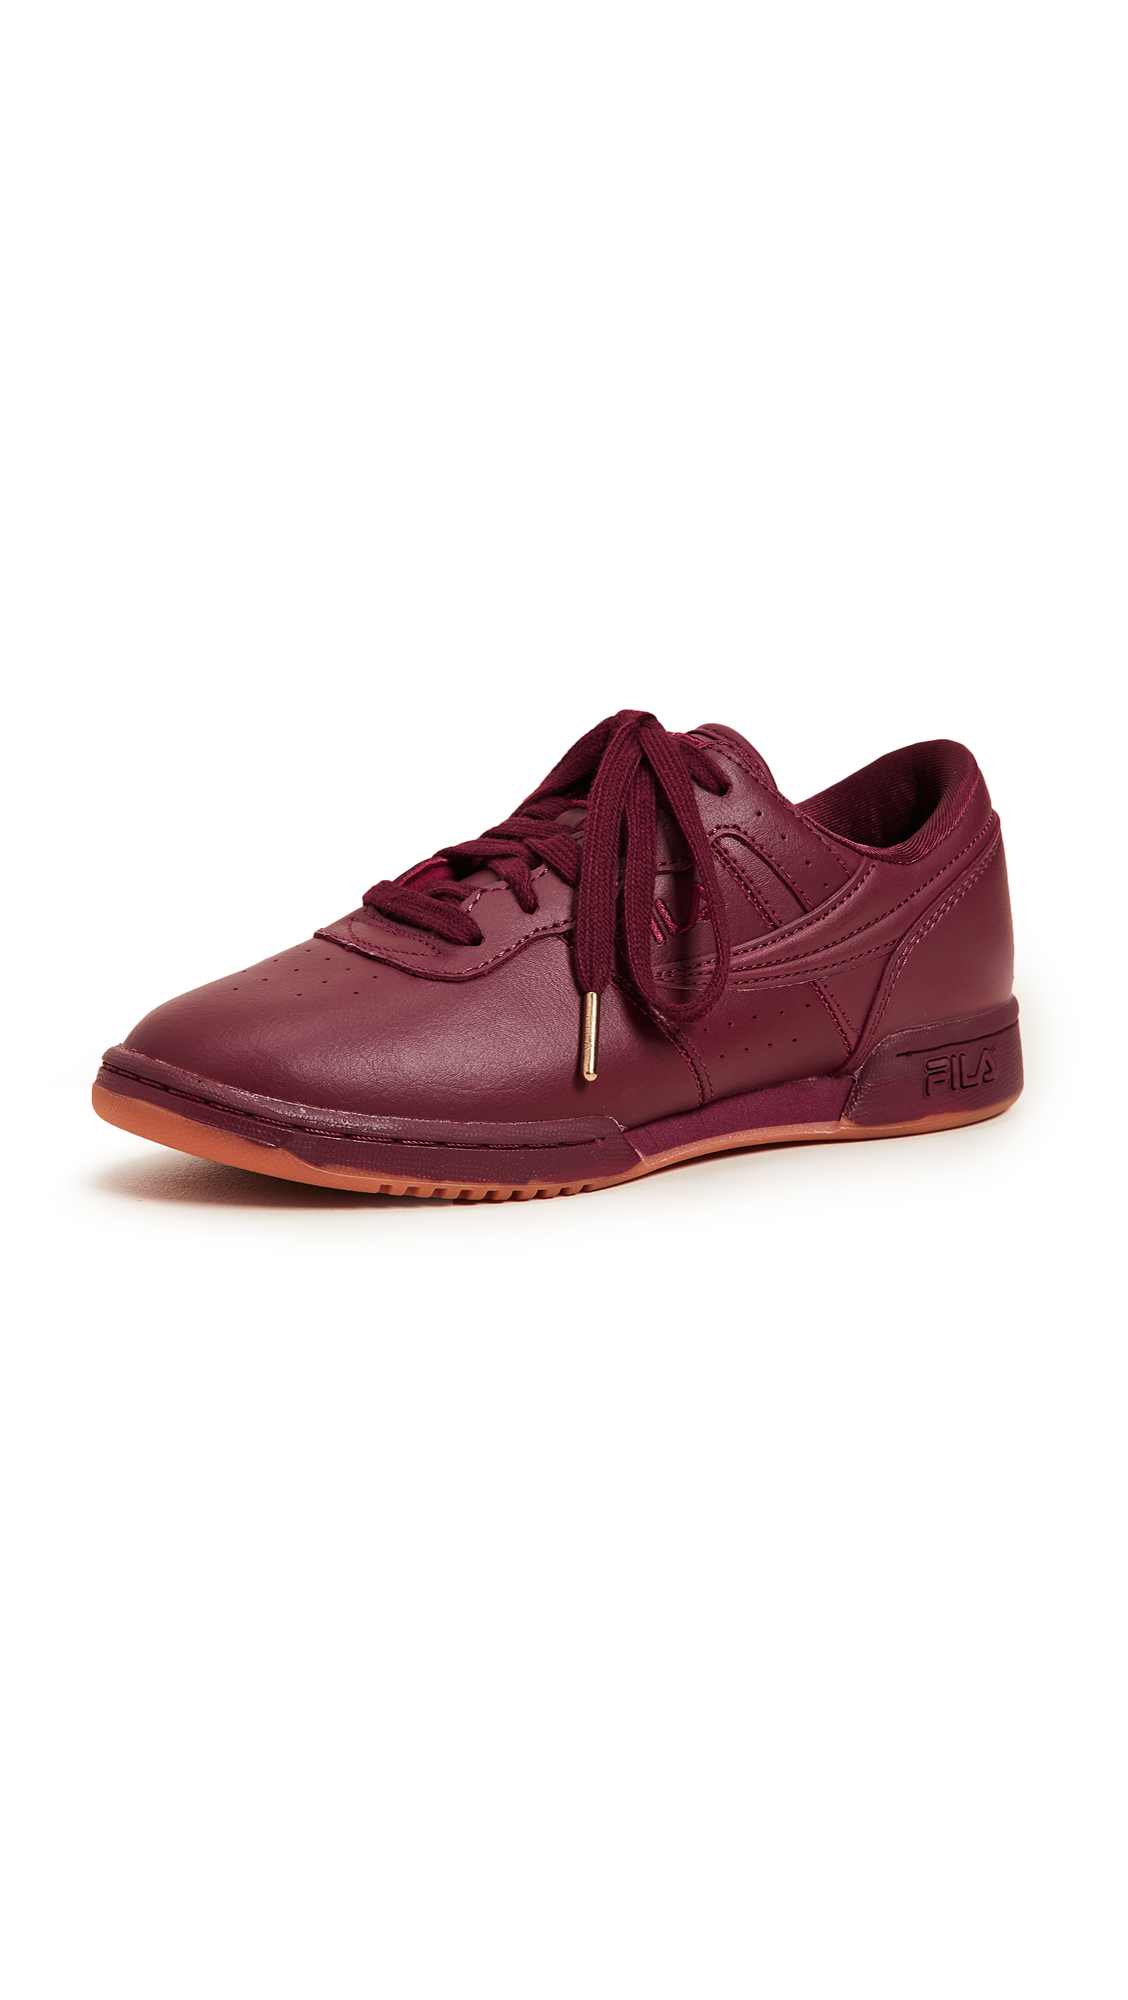 Fila Original Fitness Zipper Sneakers - Tawny Port/Gum